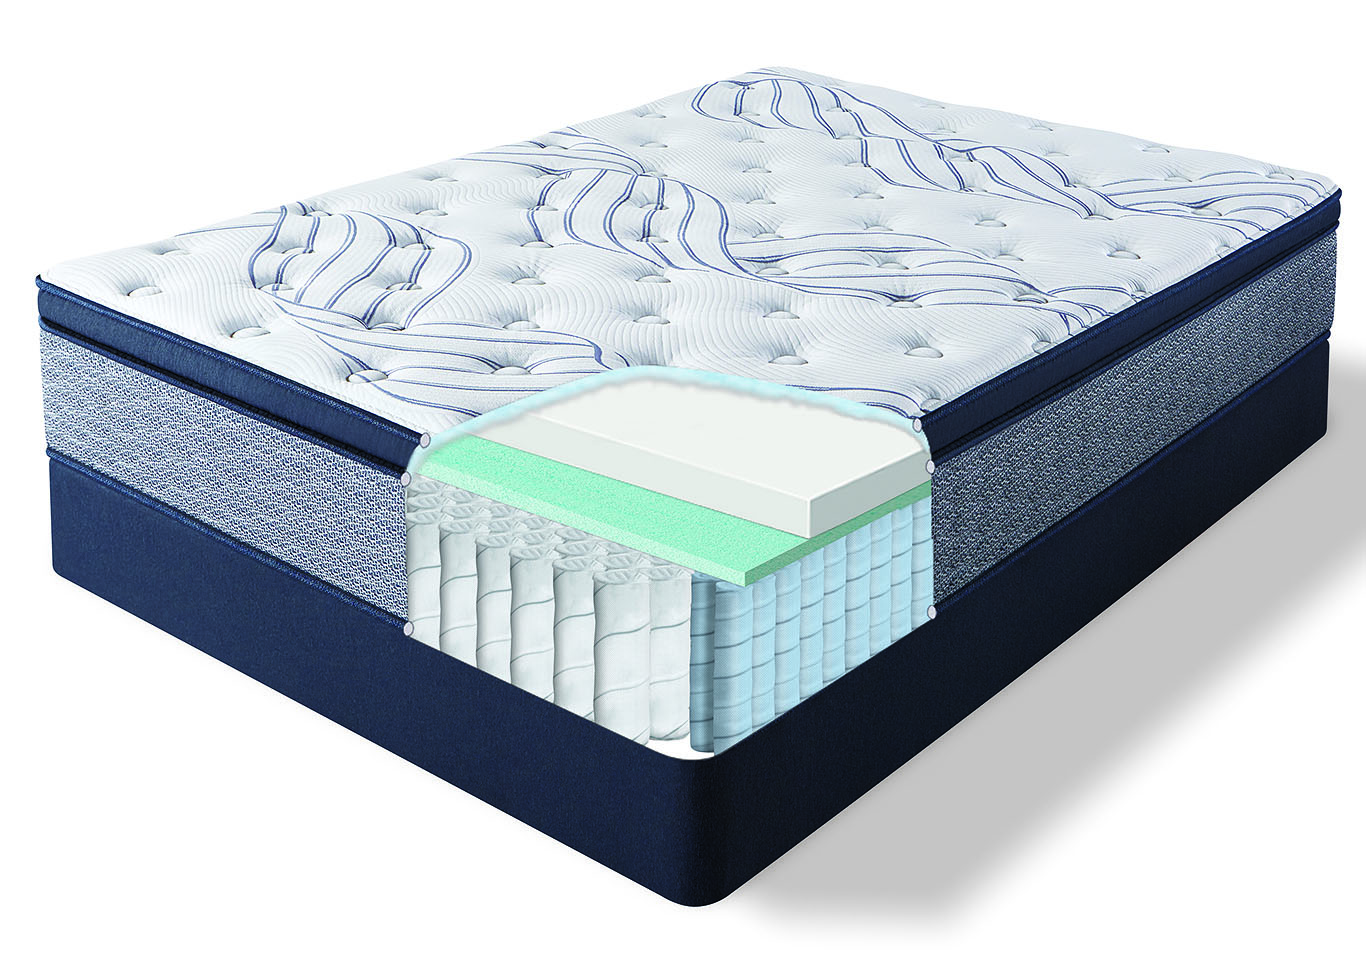 Kleinmon II Plush PT Full Mattress,Huffman Koos